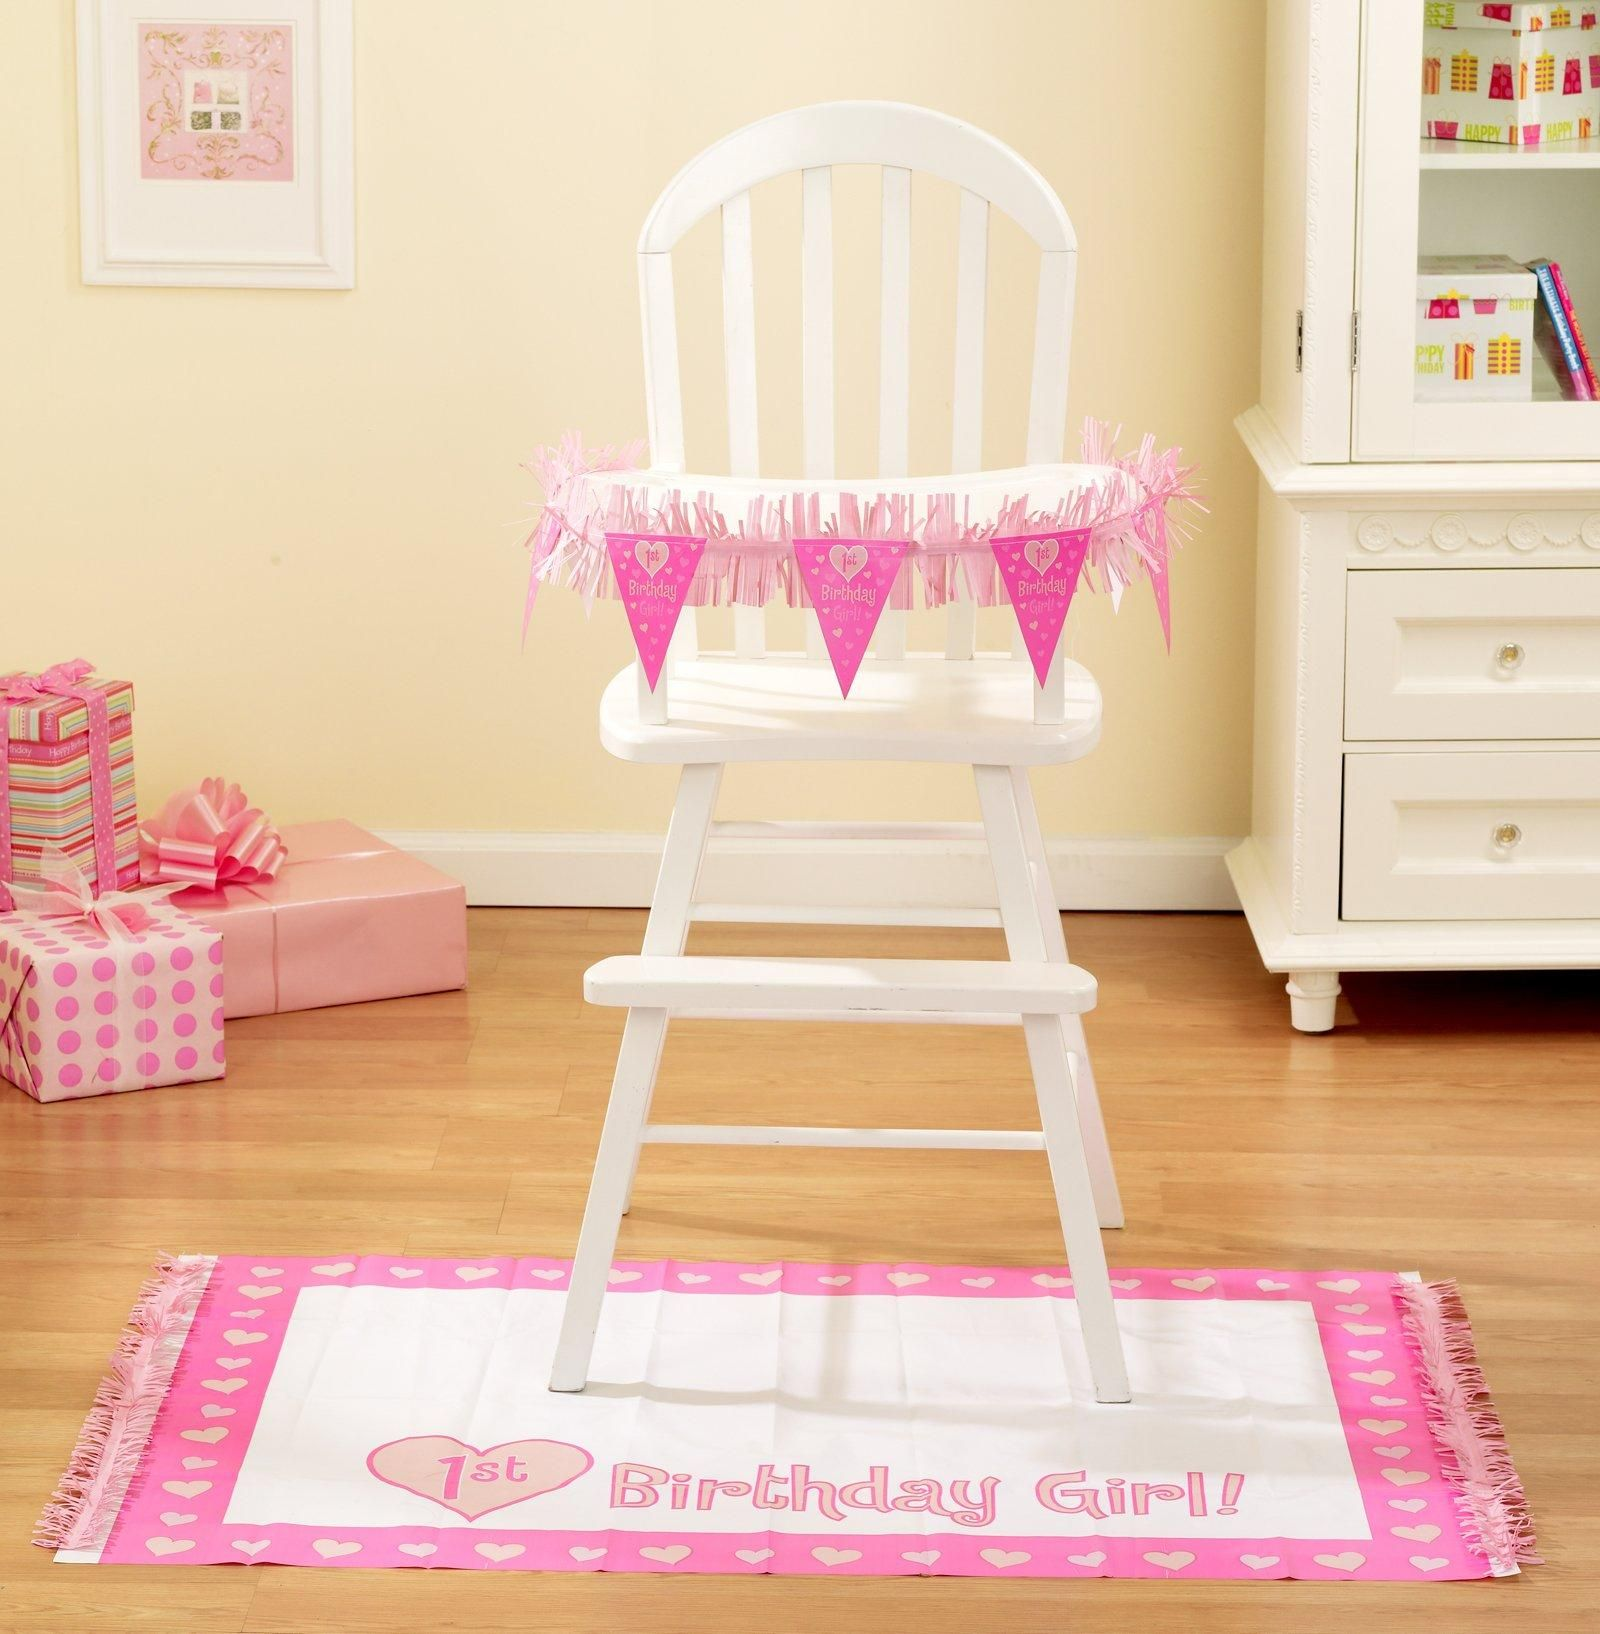 One Special Girl High Chair Decorating Kit from BirthdayExpresscom